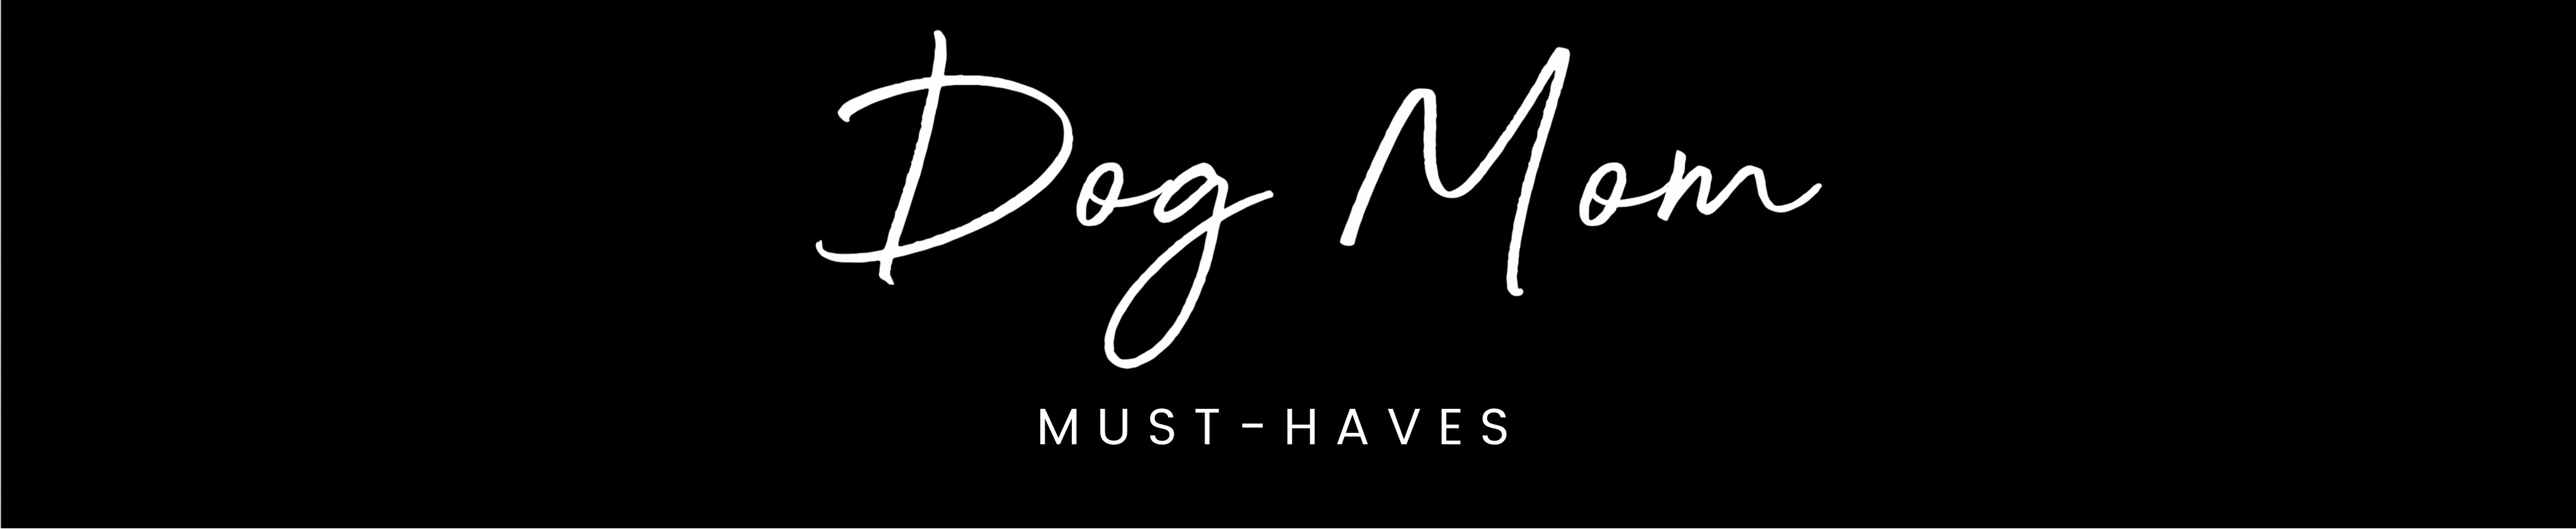 dog-mom-must-haves-banner.jpg